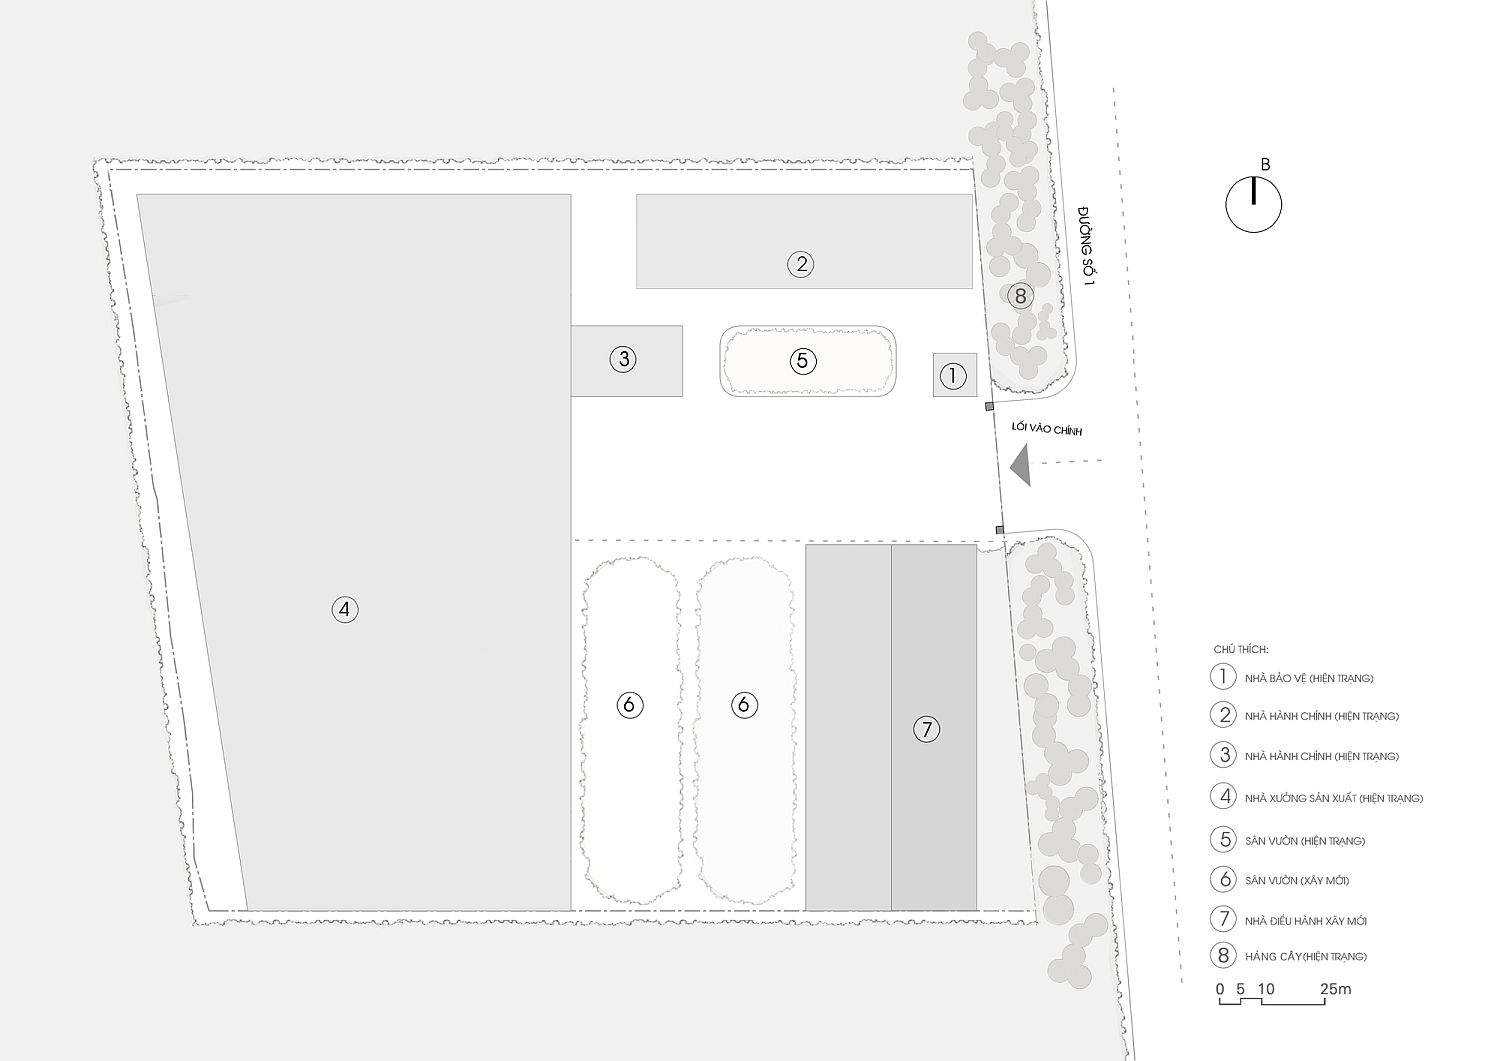 Site plan of the office in Vietnam